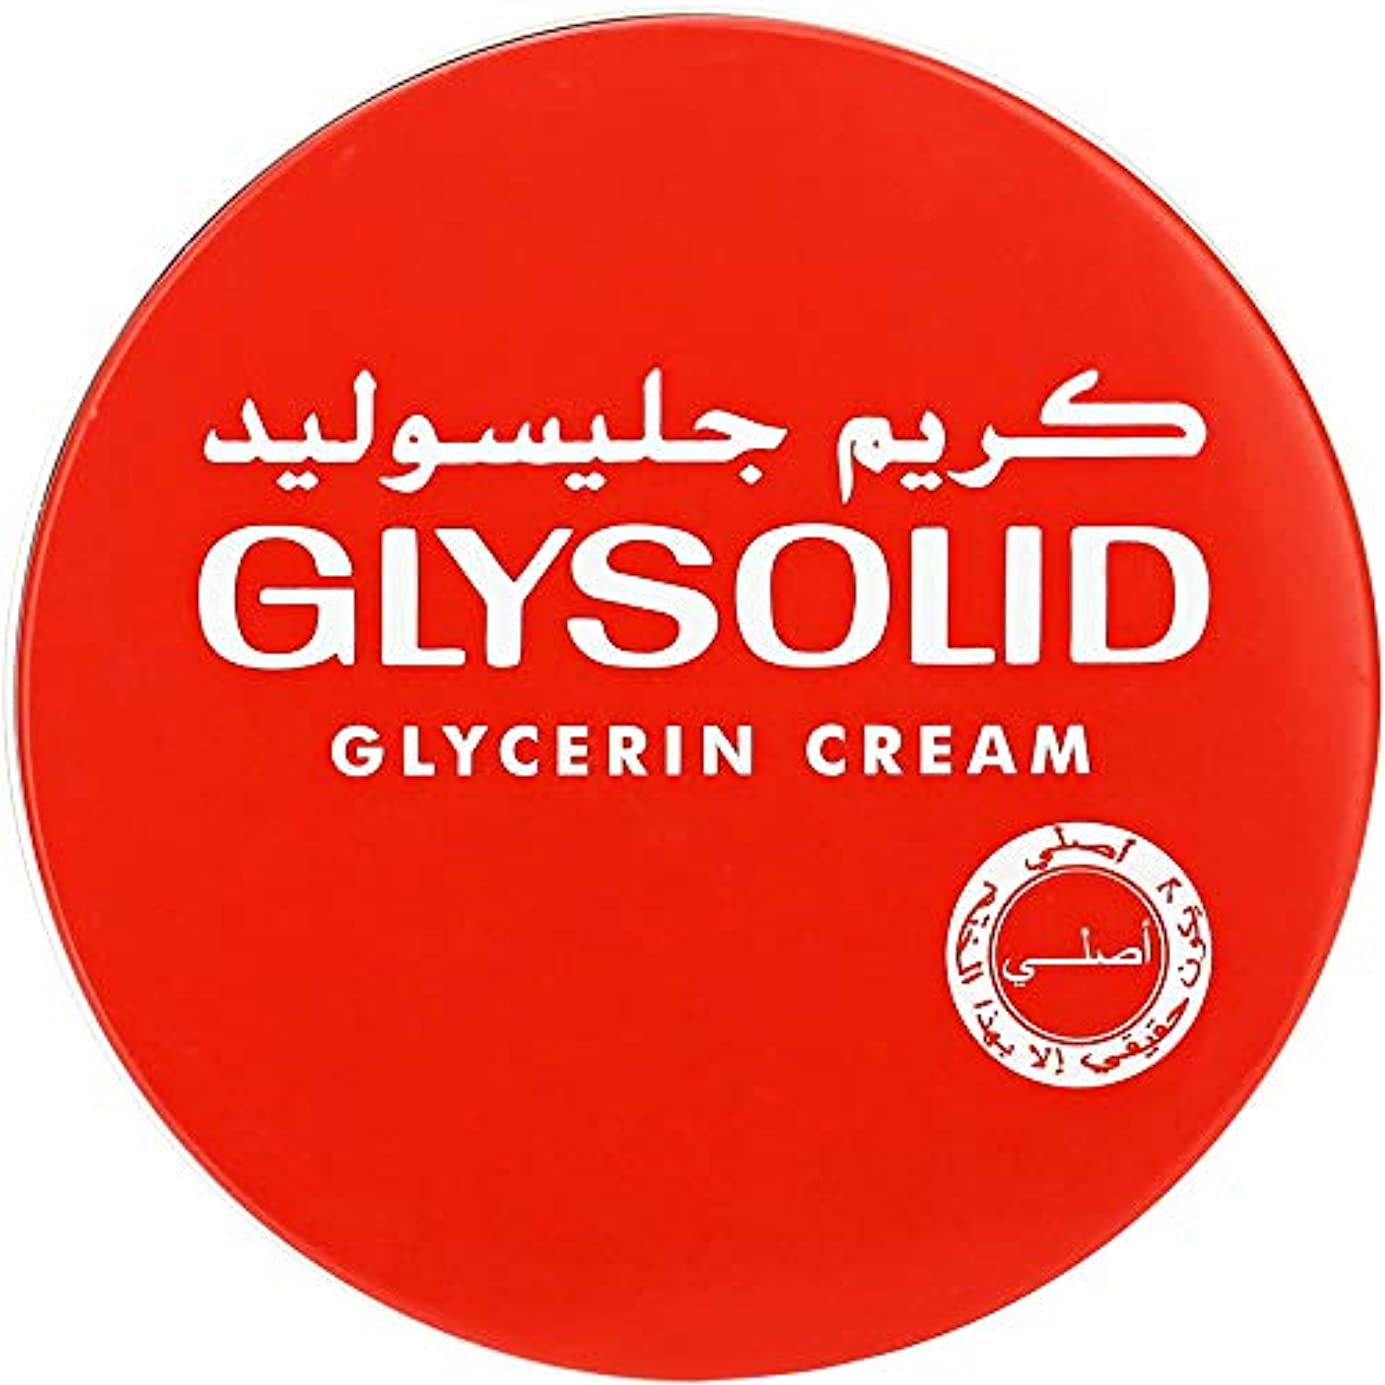 章増加する地域Glysolid Cream Face Moisturizers For Dry Skin Hands Feet Elbow Body Softening With Glycerin Keeping Your Skin Soft Healthy And Smooth (20 ml)